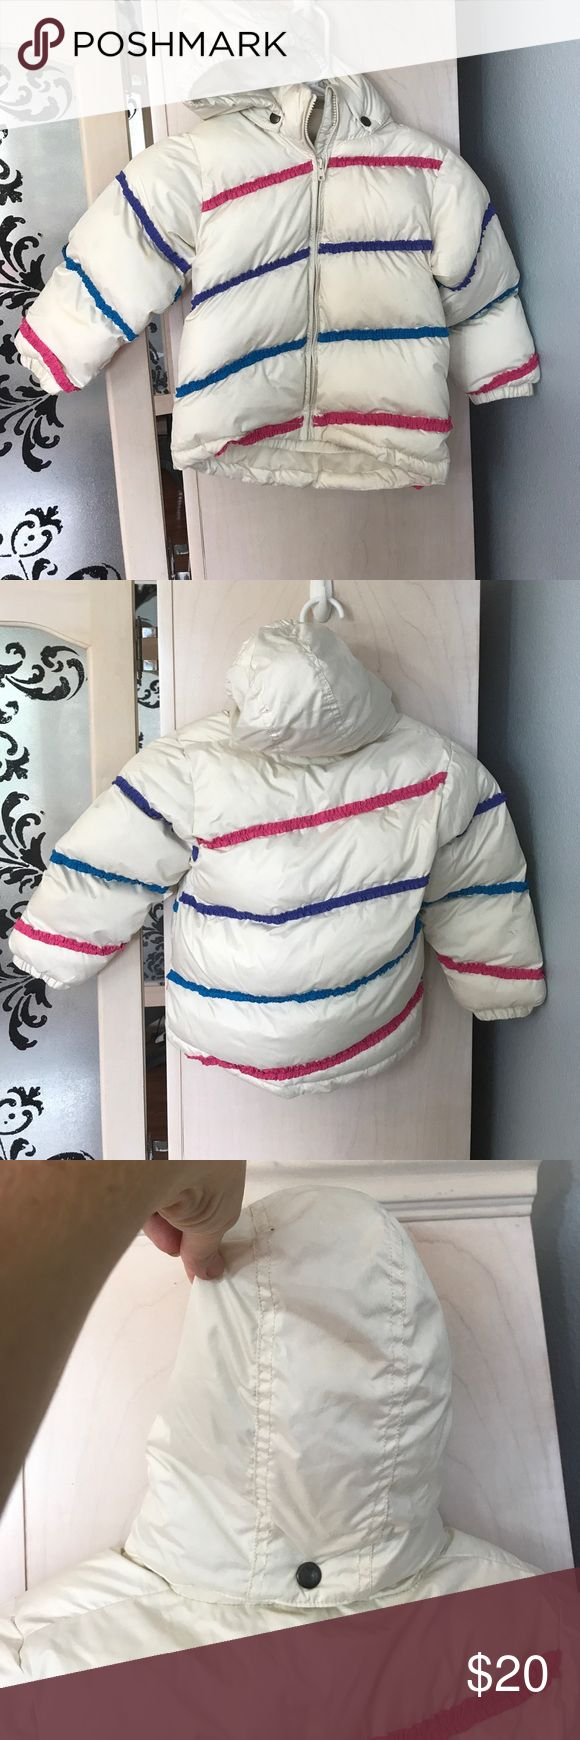 Kids snow jacket Cream puffer with pink, purple, blue stripes. Zips up. Size S fits anywhere from a 3t to a 6. Some discoloration on arm, will probably come out with laundering. pulse Jackets & Coats Puffers